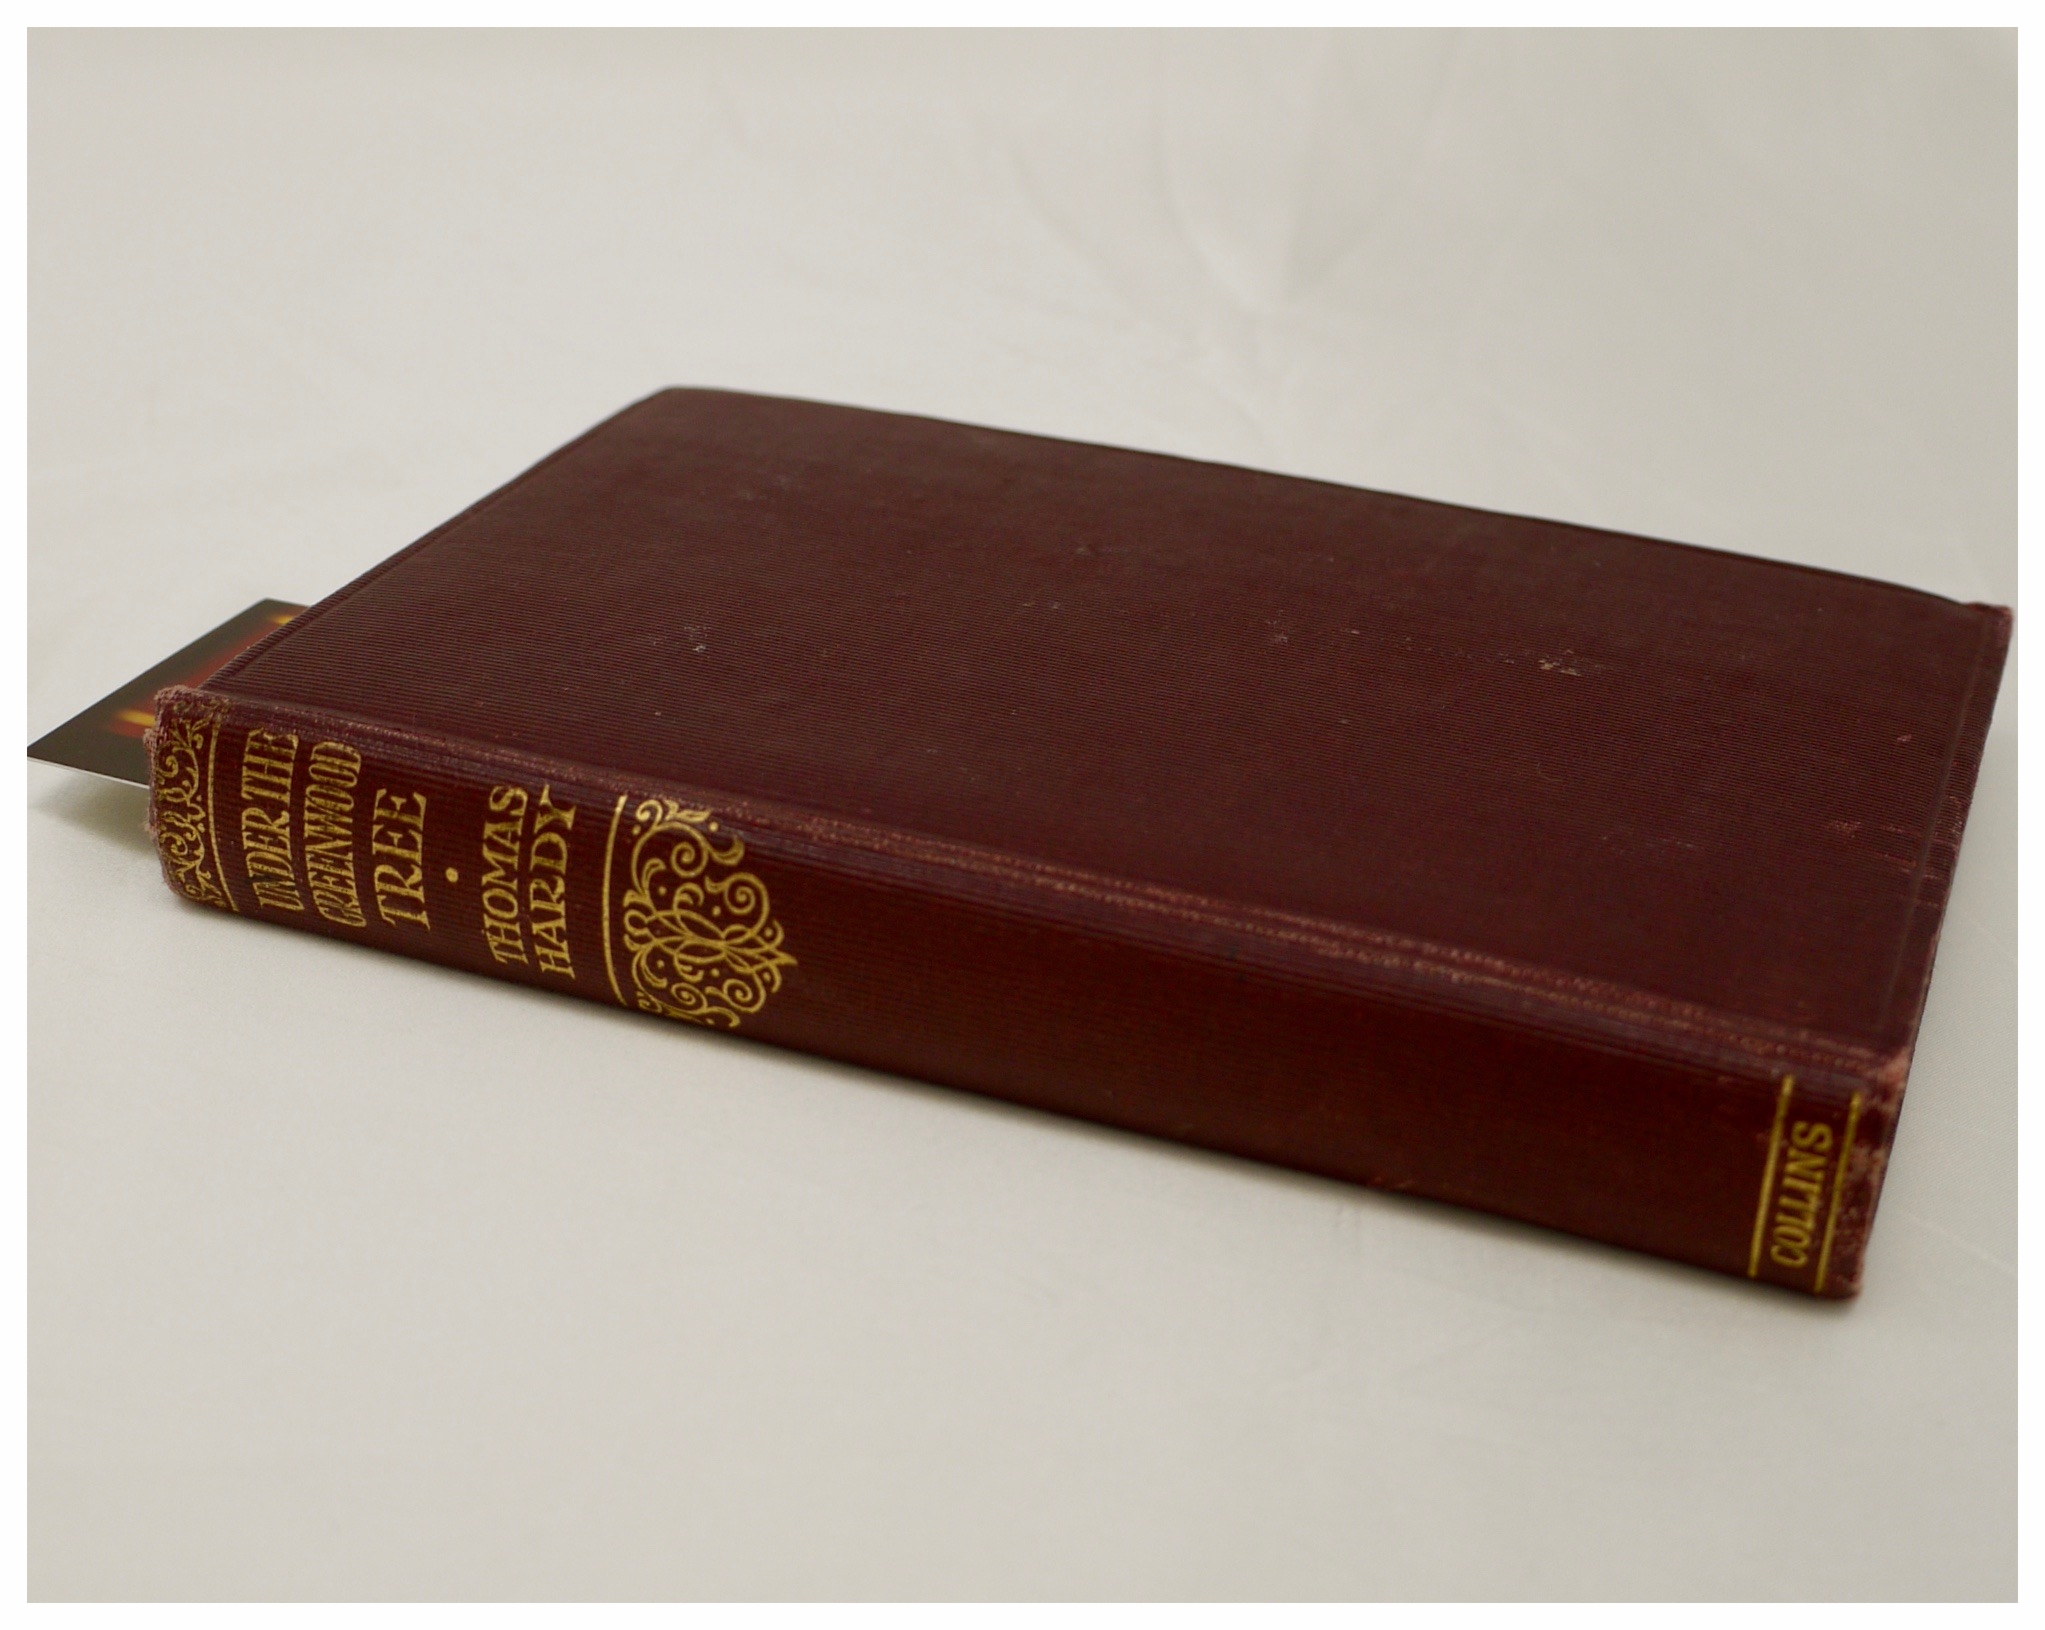 James from SF - wanted to know a little more about the hardback/hardcover book used in our photos.